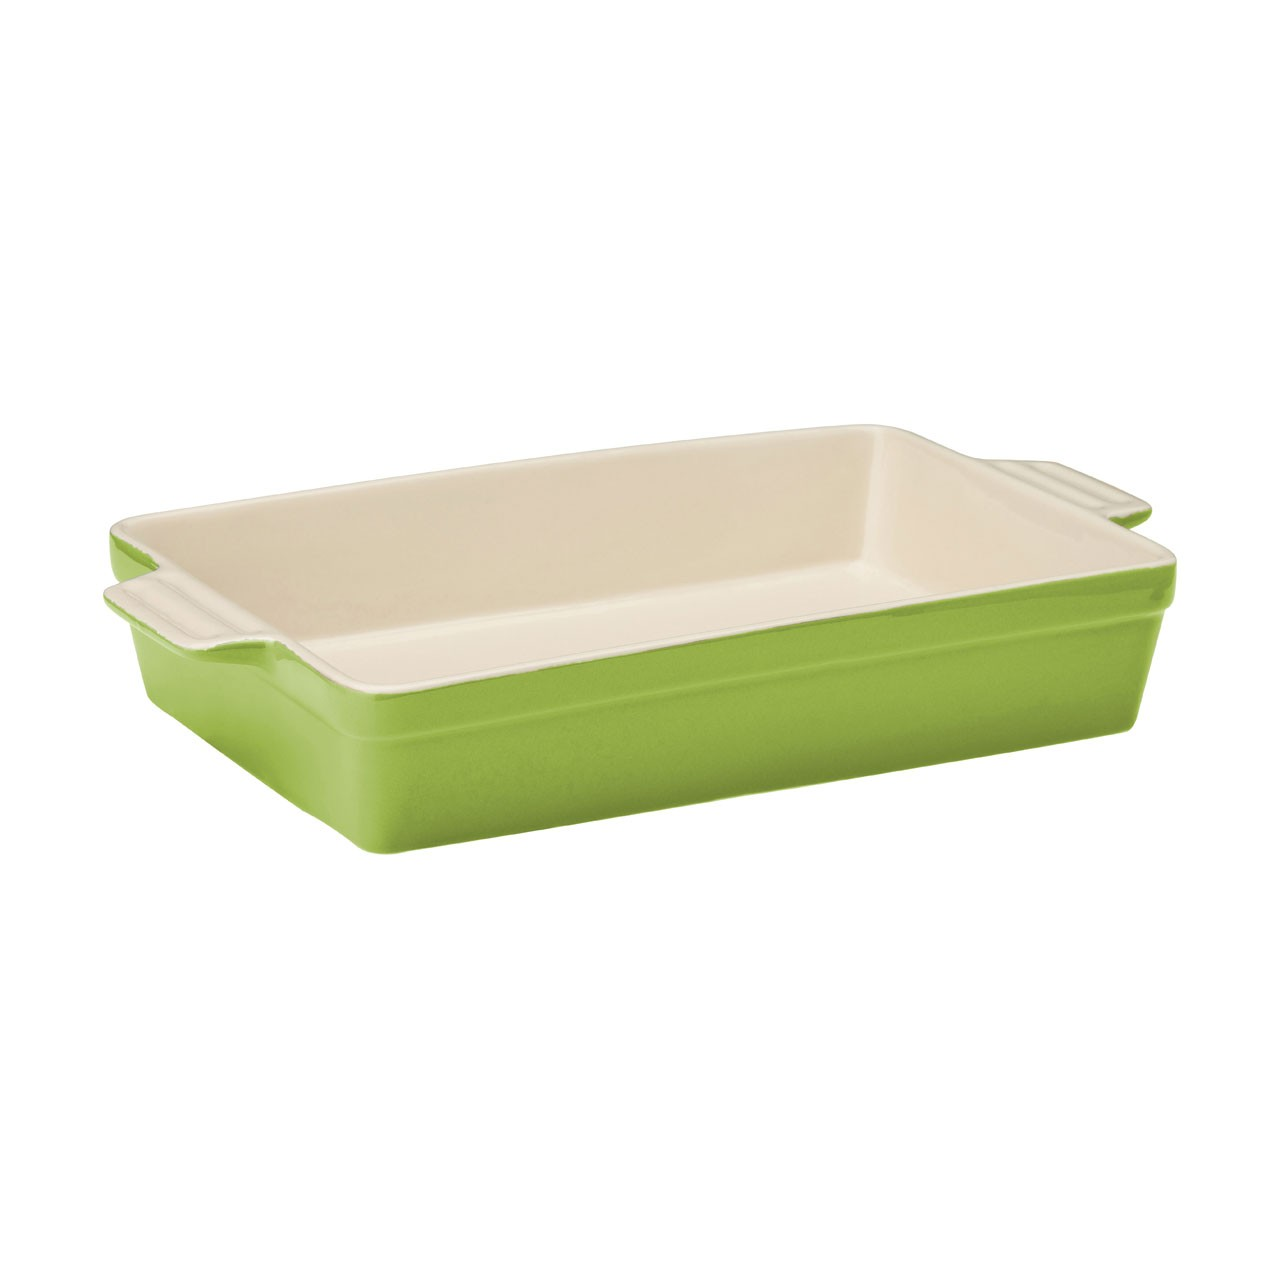 Casserole Dish Lime Green Stoneware 1.7ltr